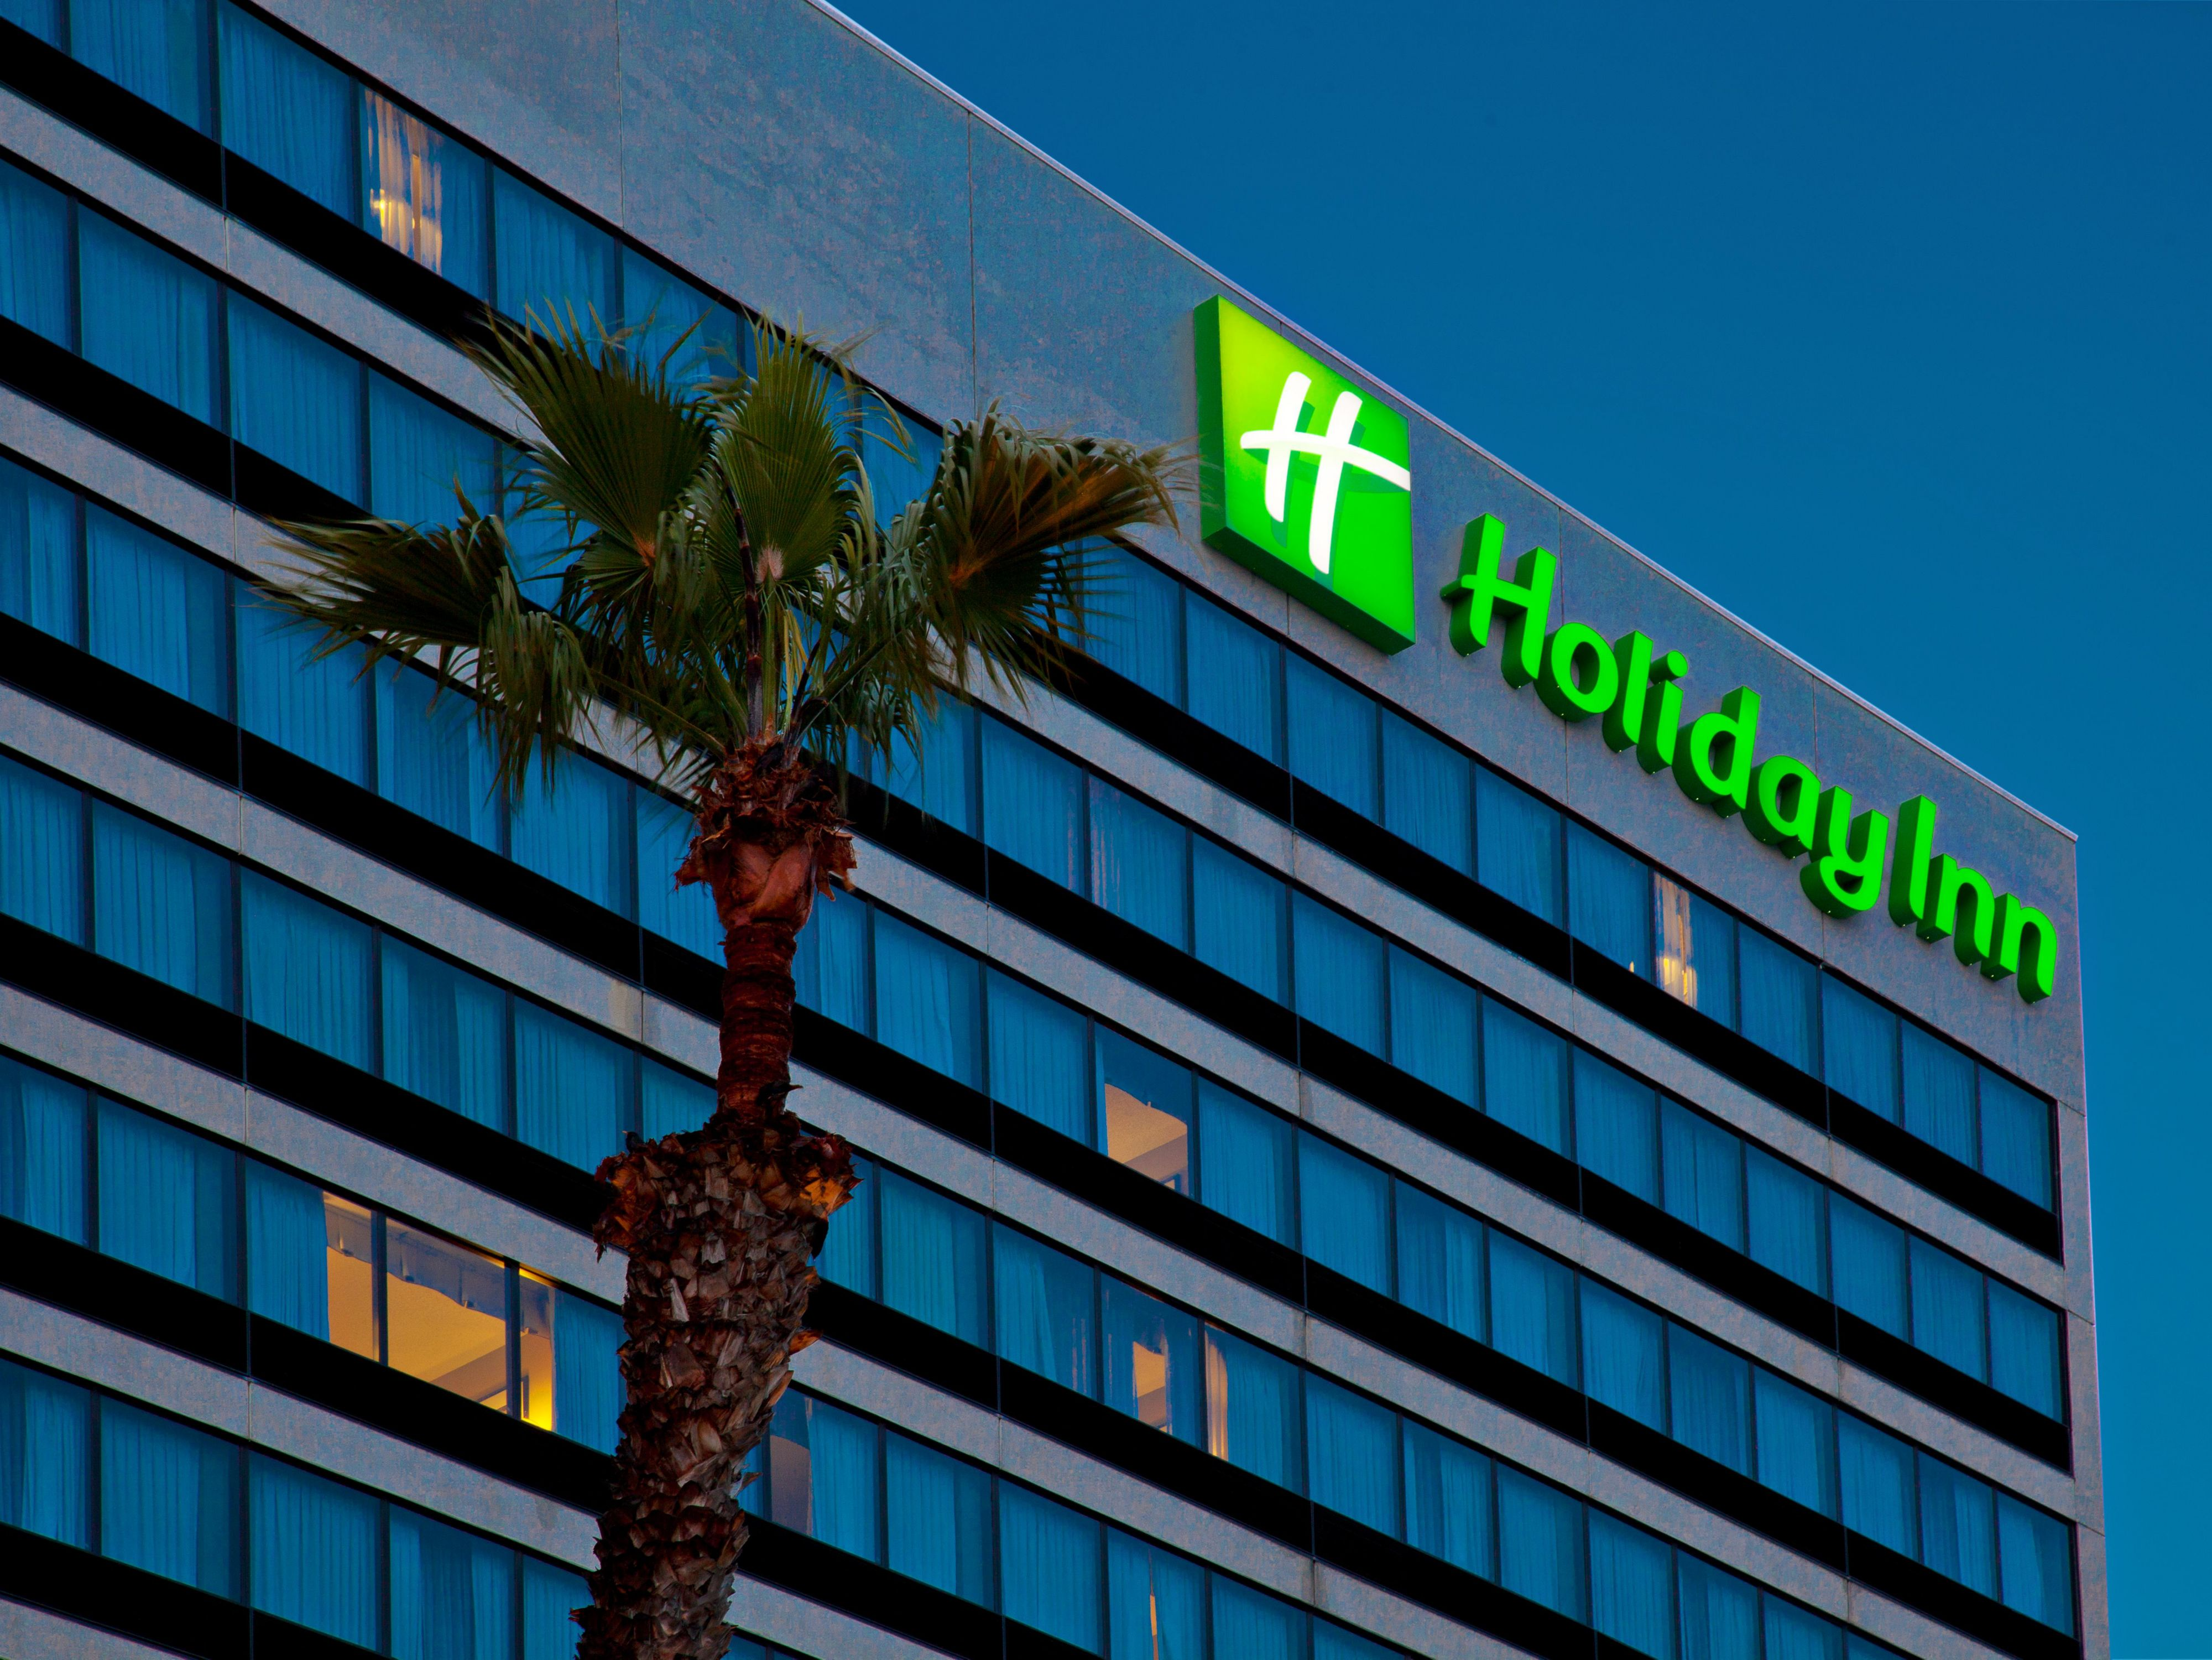 Night view of the Holiday Inn Los Angeles Gateway-Torrance